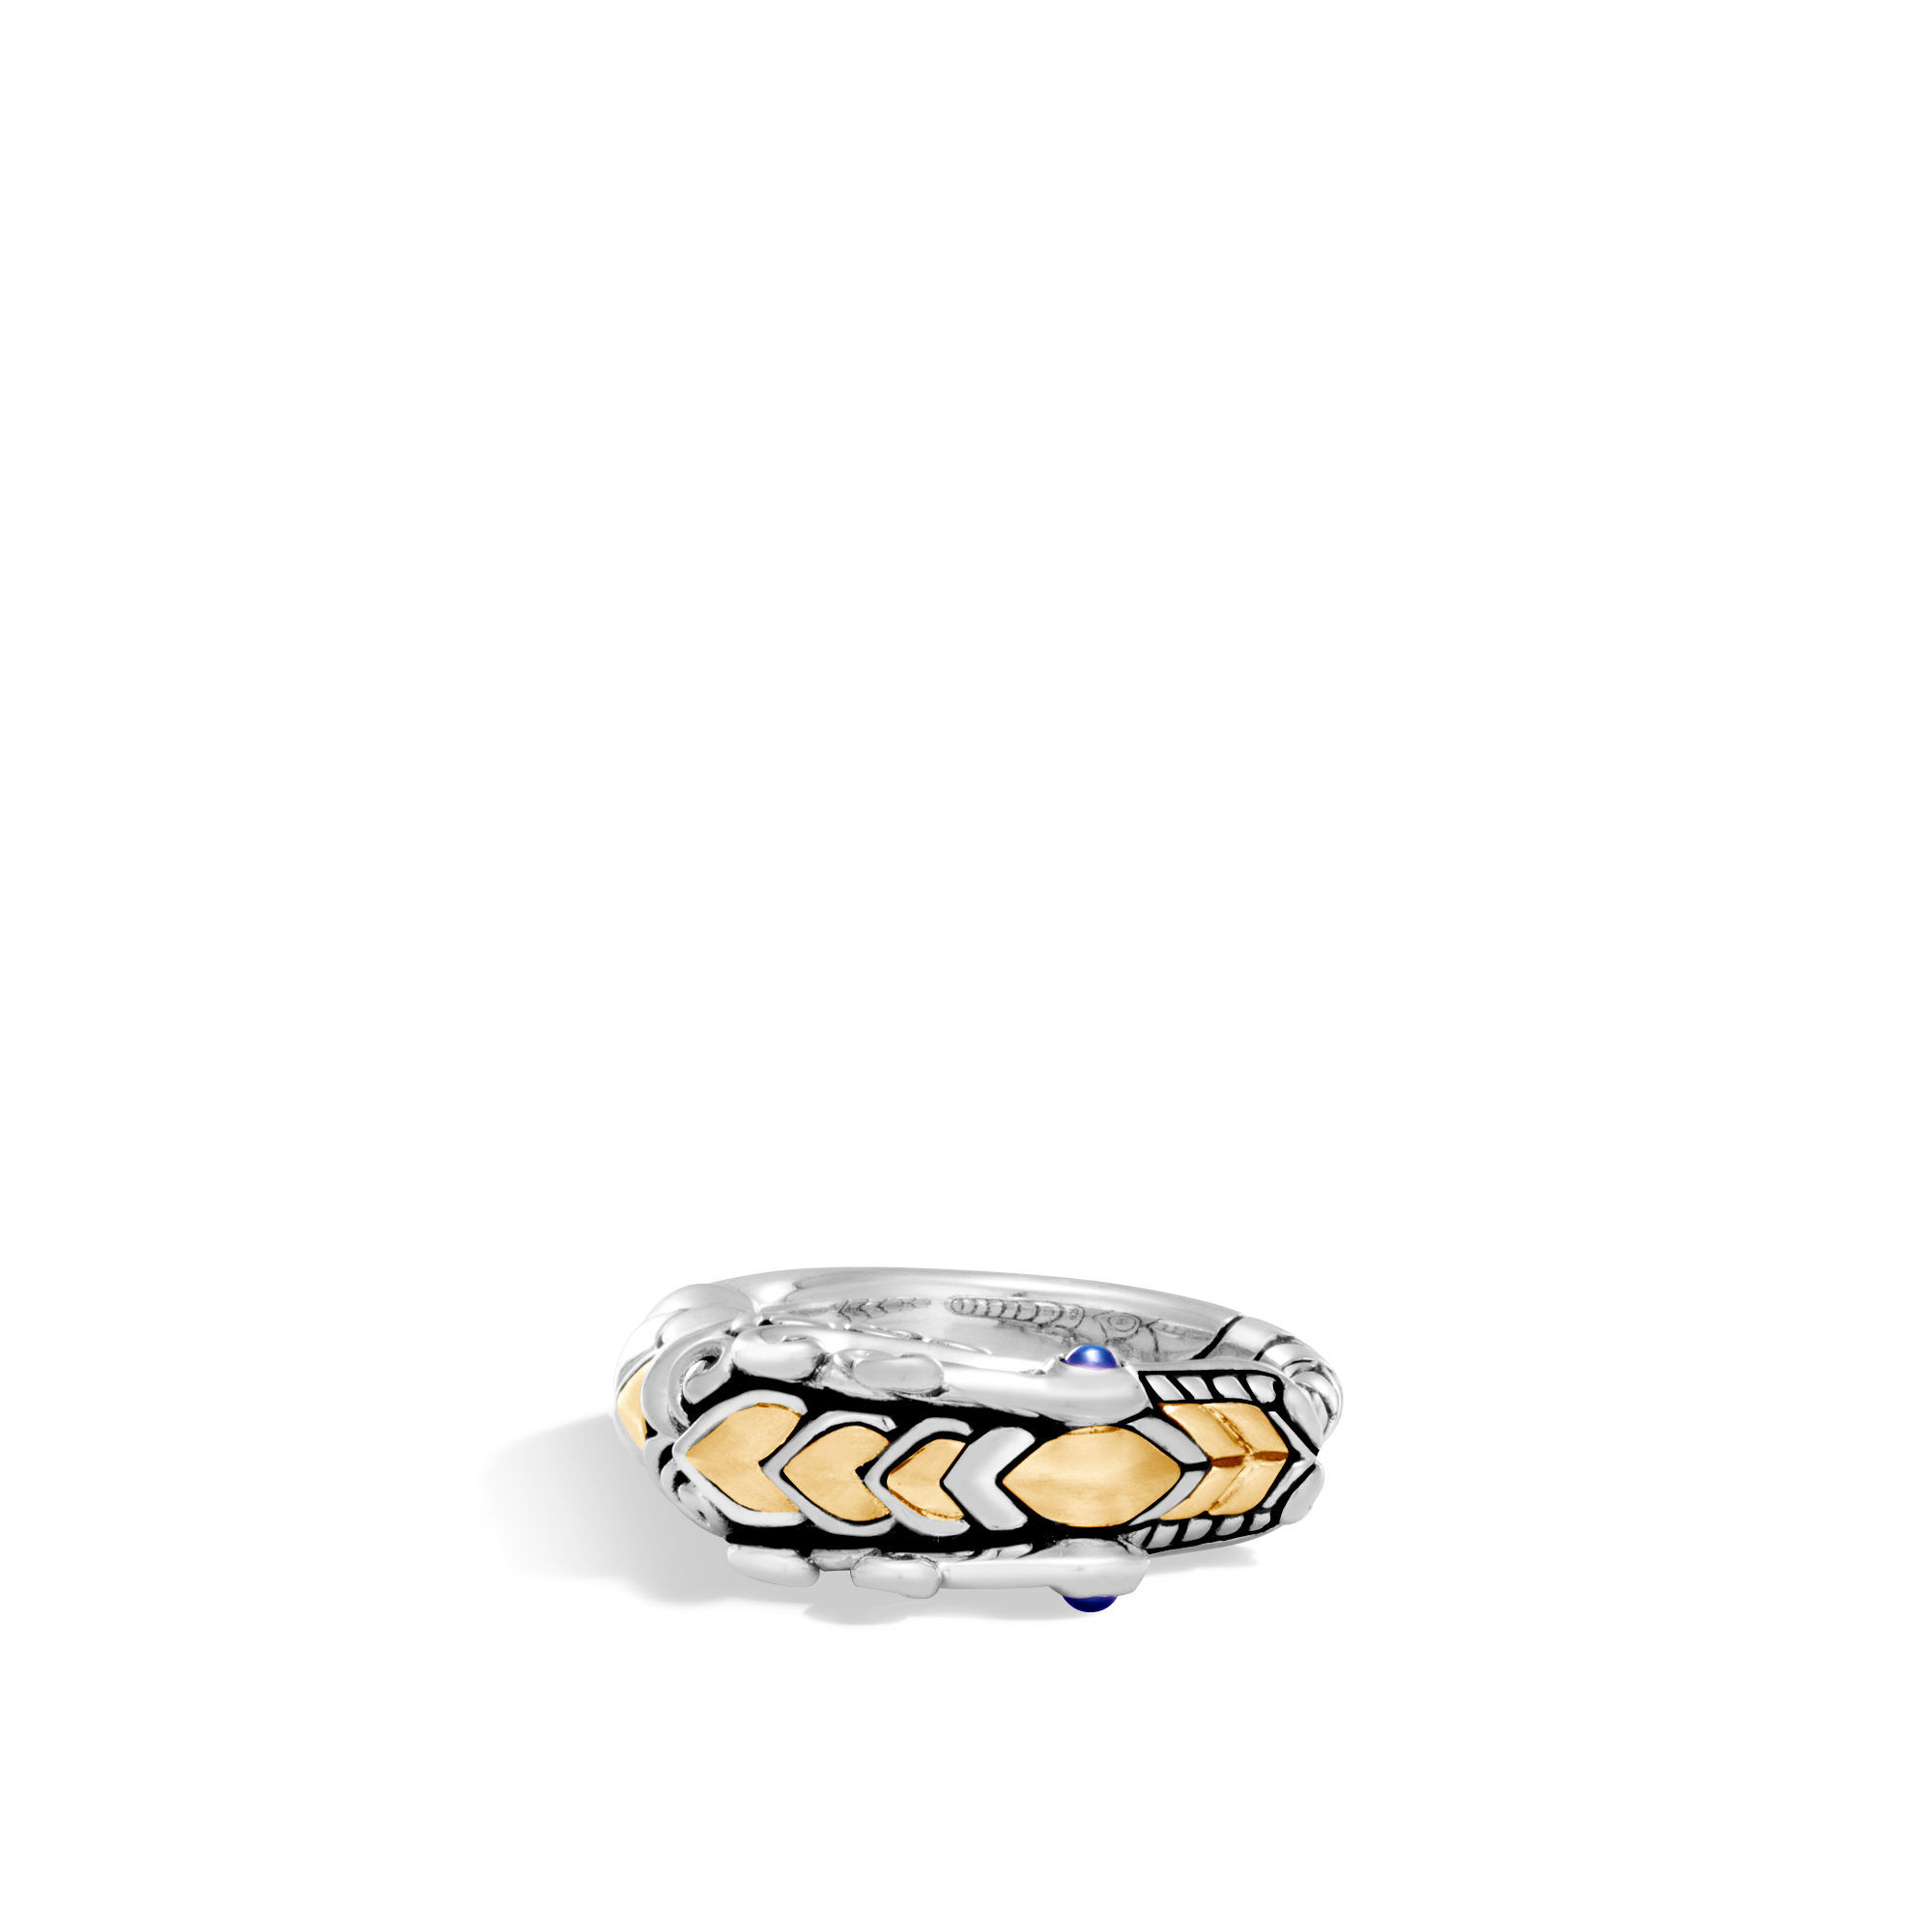 Legends Naga Ring in Brushed Silver and 18K Gold, Blue Sapphire, large